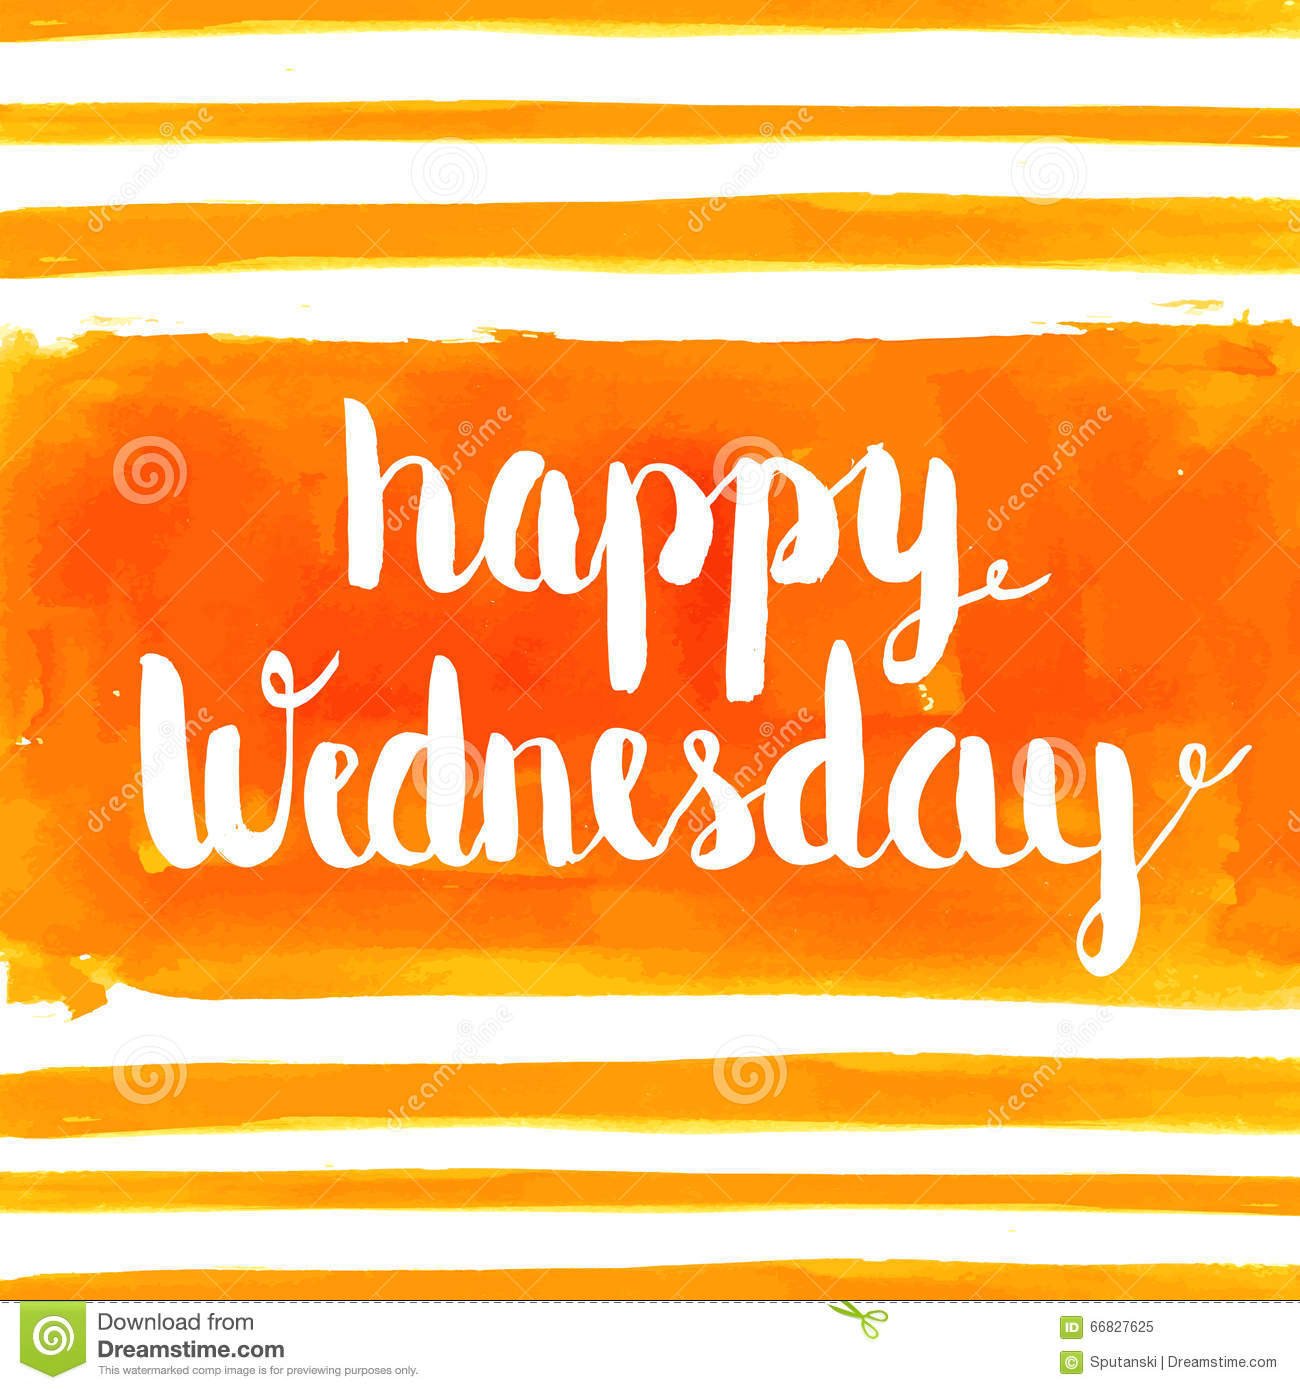 happy wednesday watercolor hand paint greeting card stock ash wednesday clip art color ash wednesday clip art color